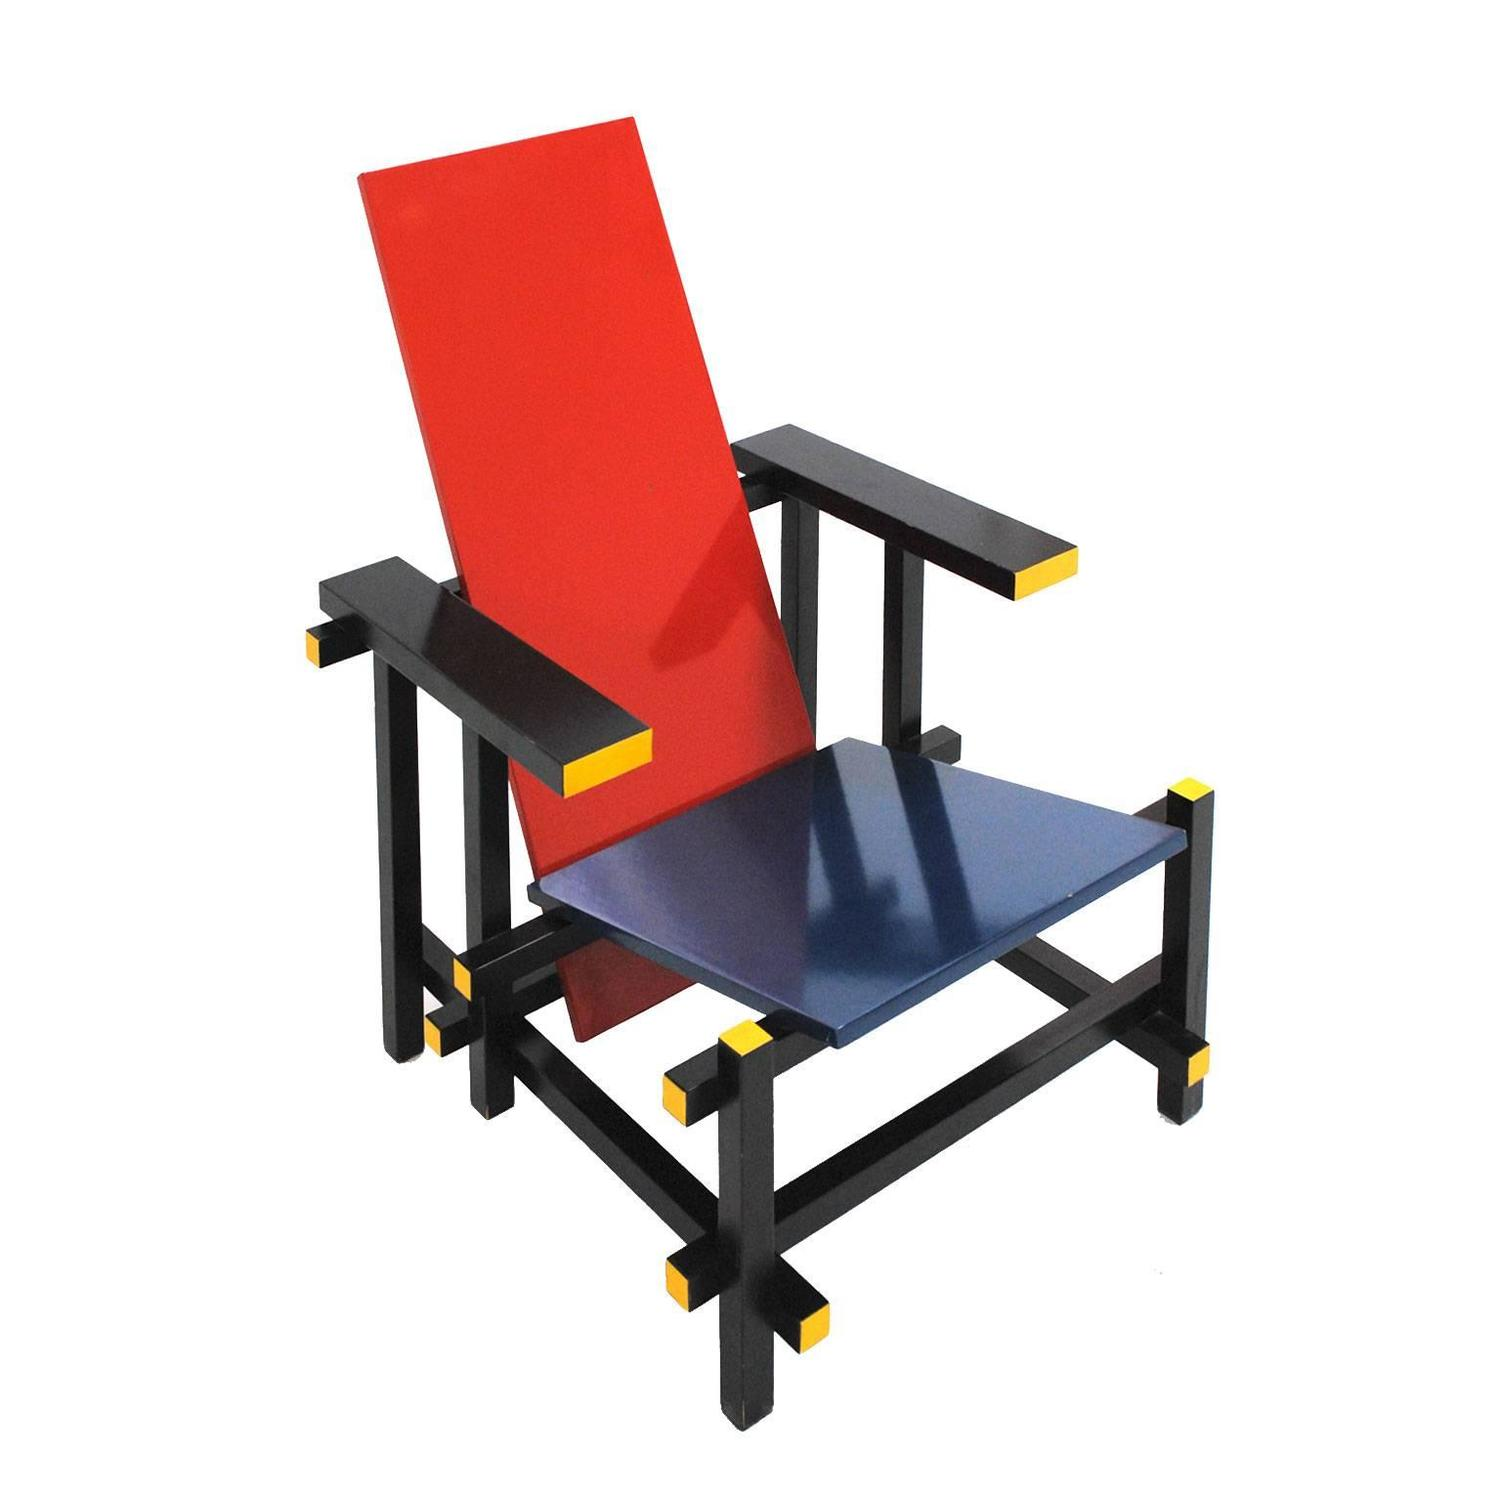 Red and Blue 365 Chair by Gerrit Thomas Rietveld for ...Gerrit Rietveld Chair